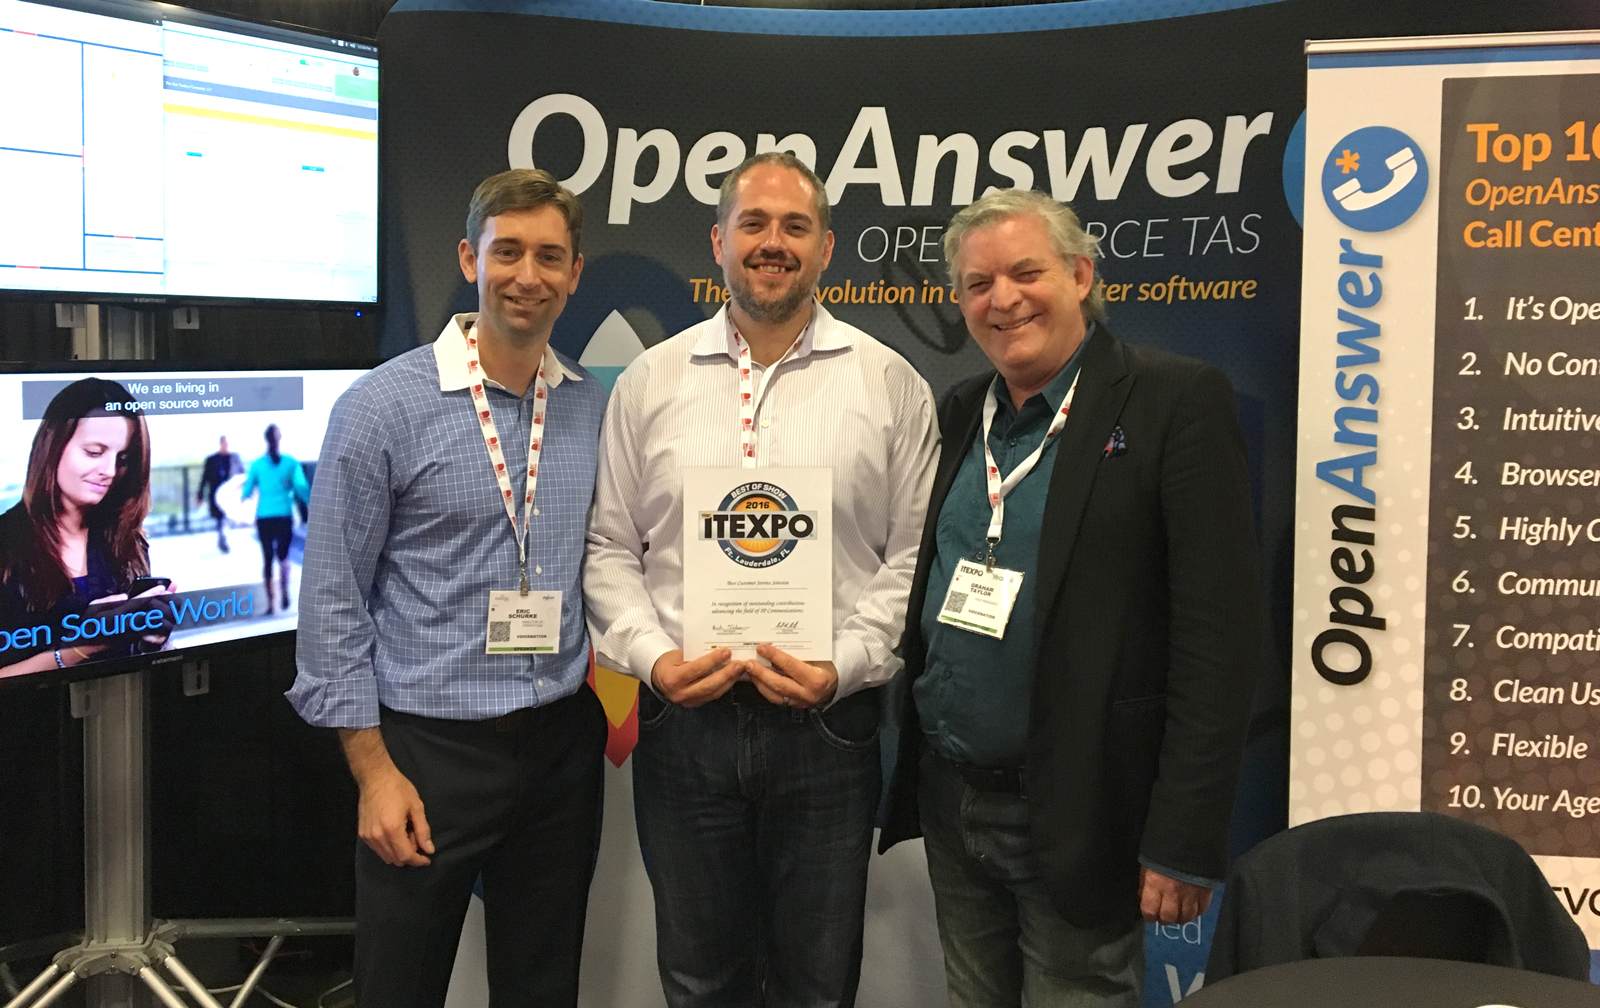 """VoiceNation Captures """"Best of Show"""" Award at ITEXPO Florida 2016"""